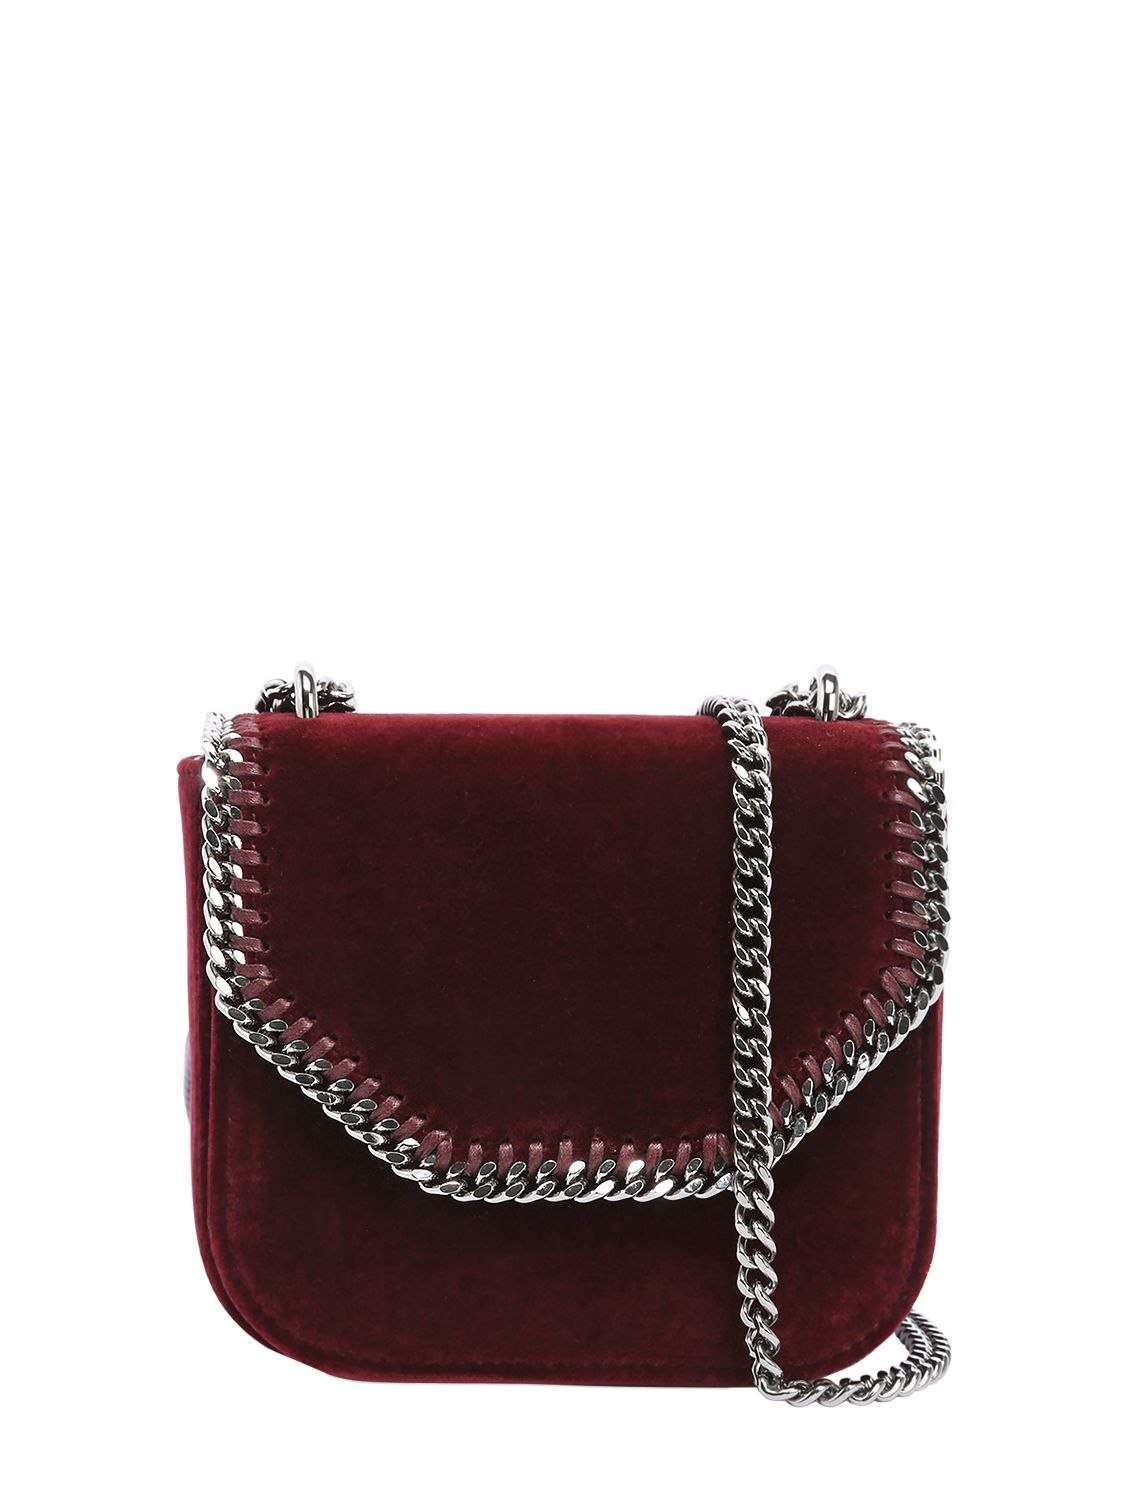 Mini Falabella box Stella McCartney